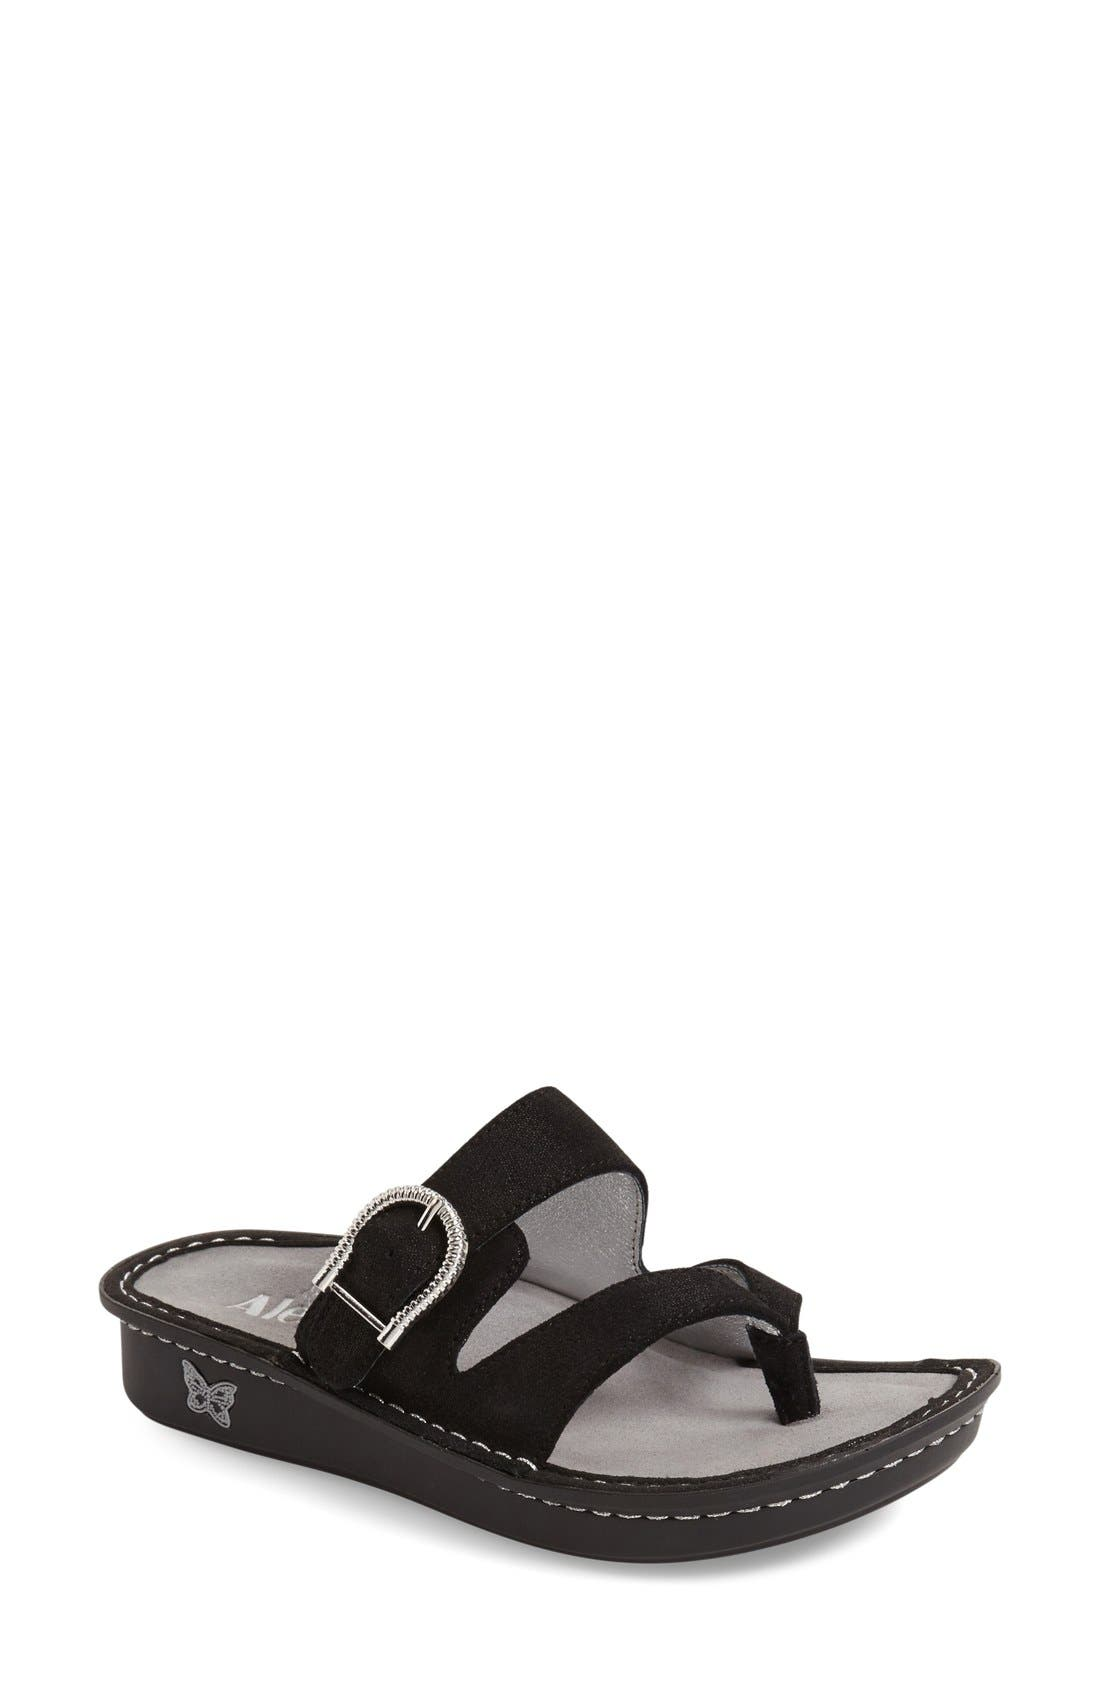 ALEGRIA Valentina Sandal, Main, color, 001